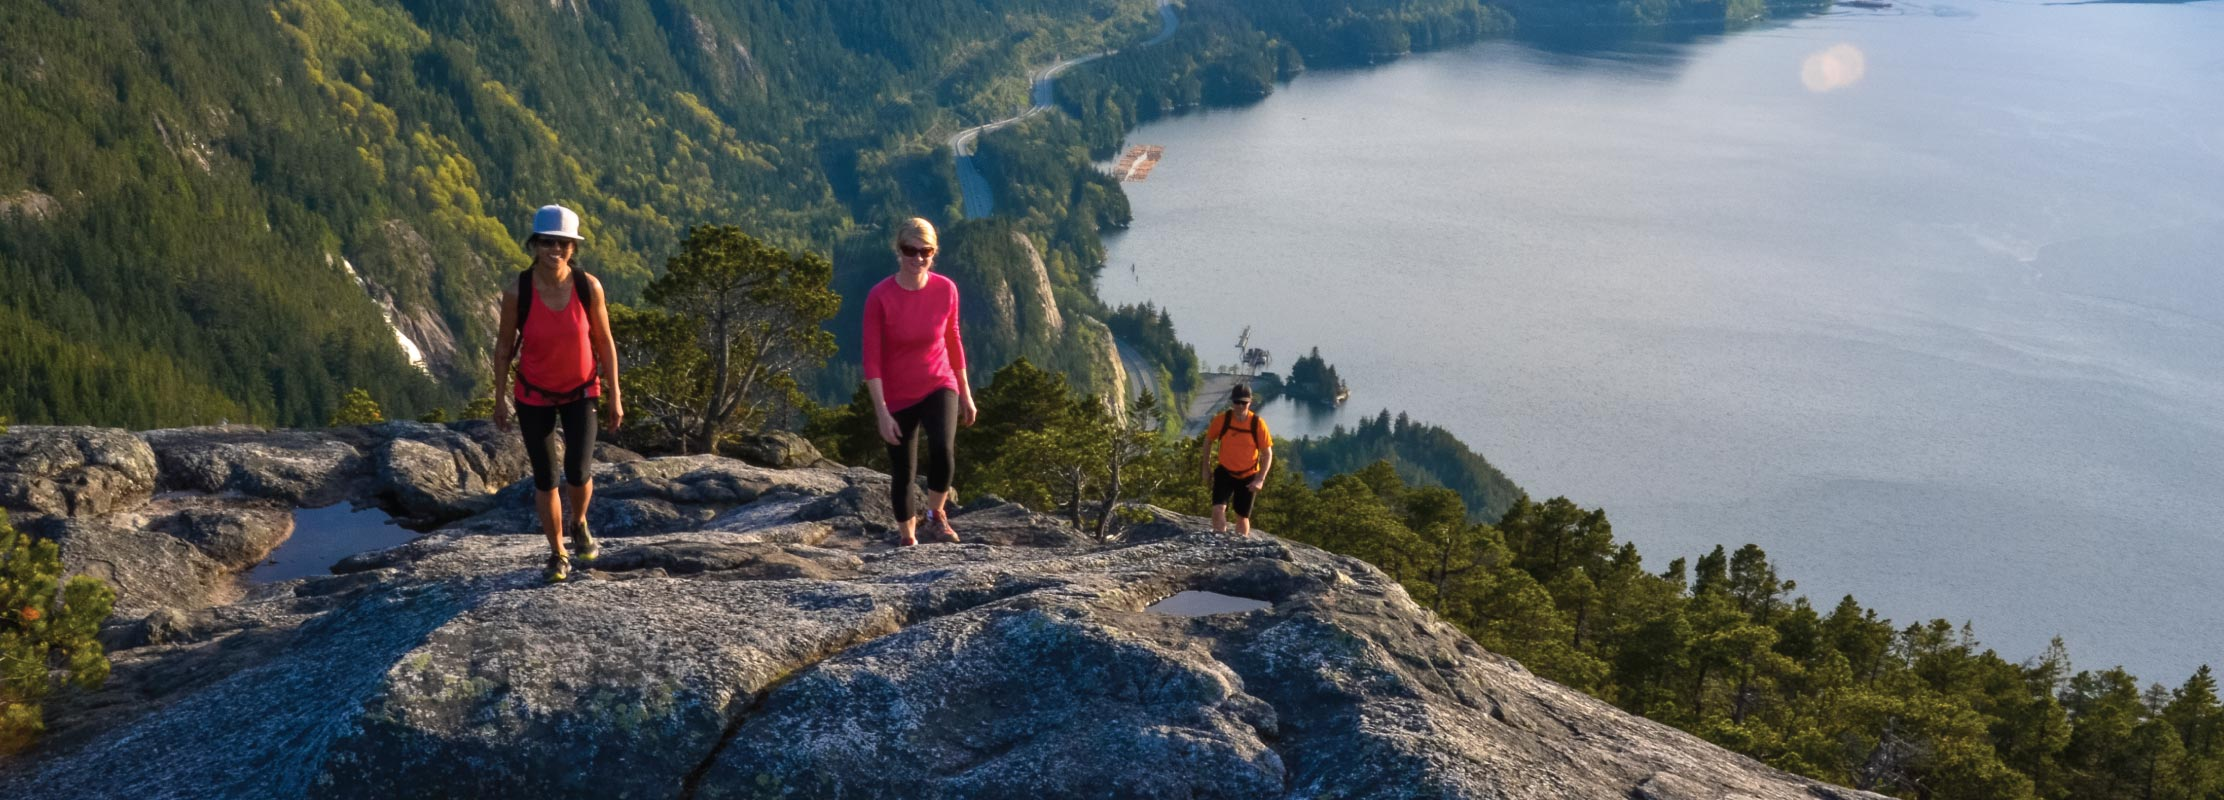 Hikers at Summit of Stawamus Chief in Squamish